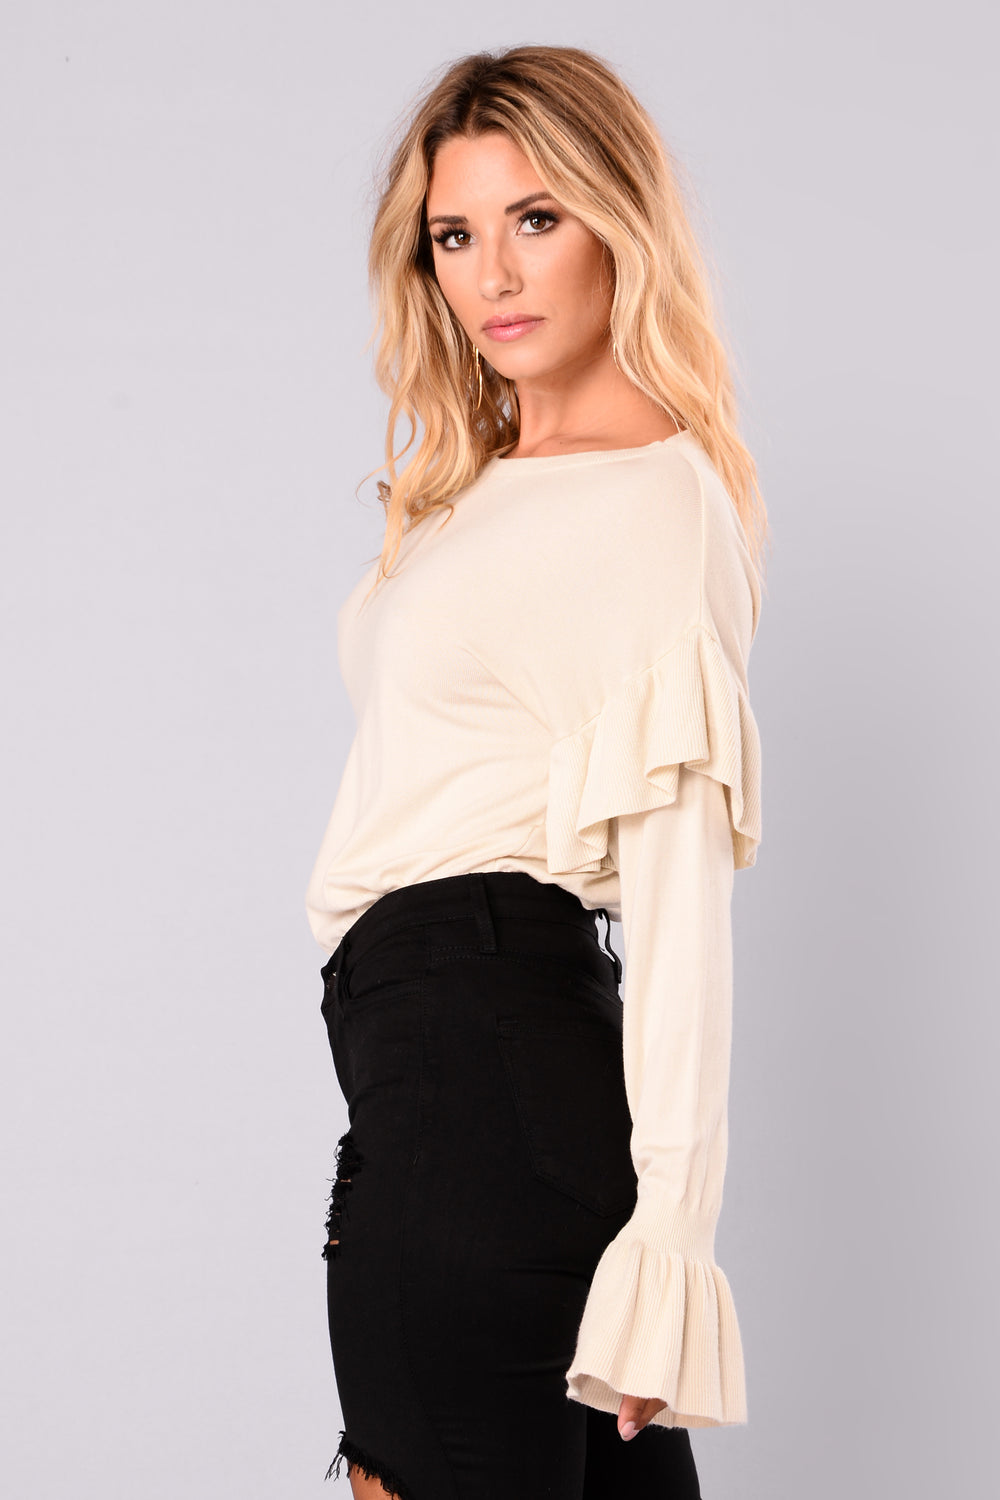 Triple Threat Ruffle Sweater - Ivory